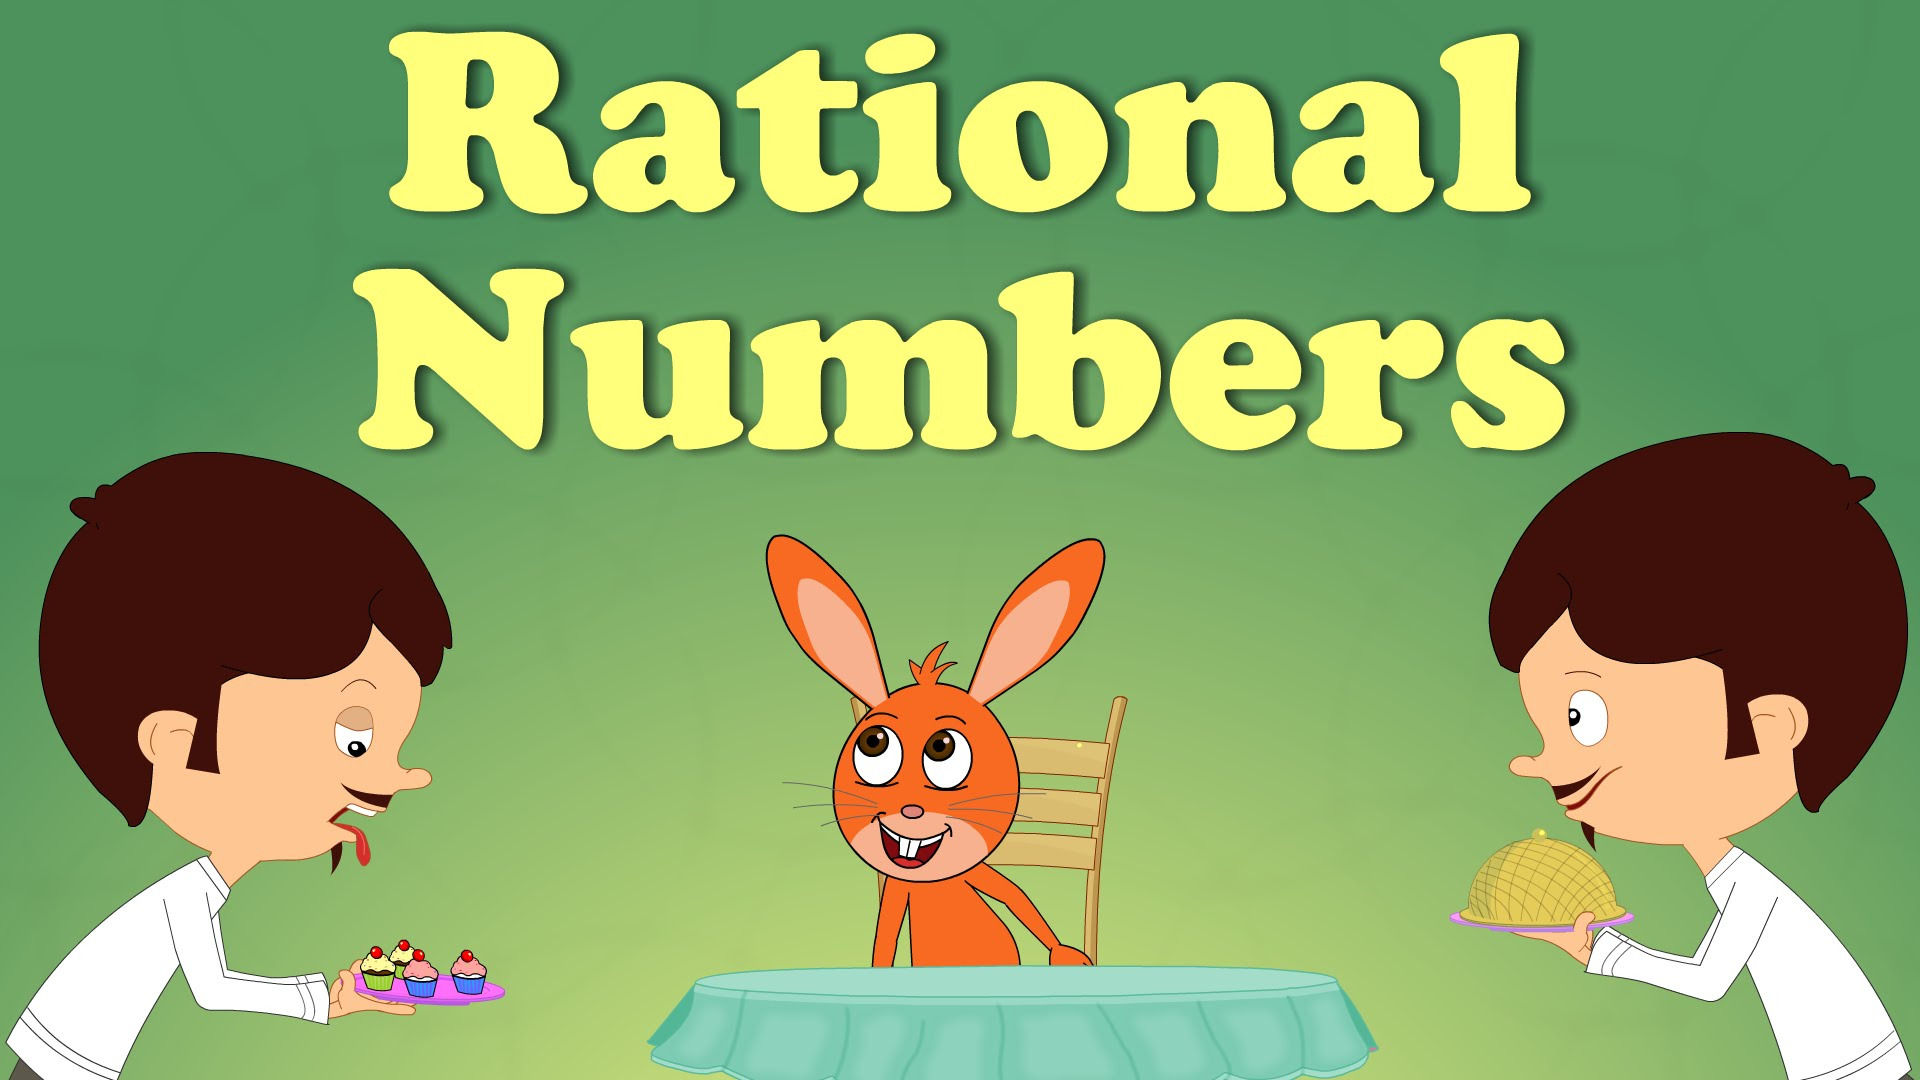 Numbers clipart natural number. Rational it s aumsum